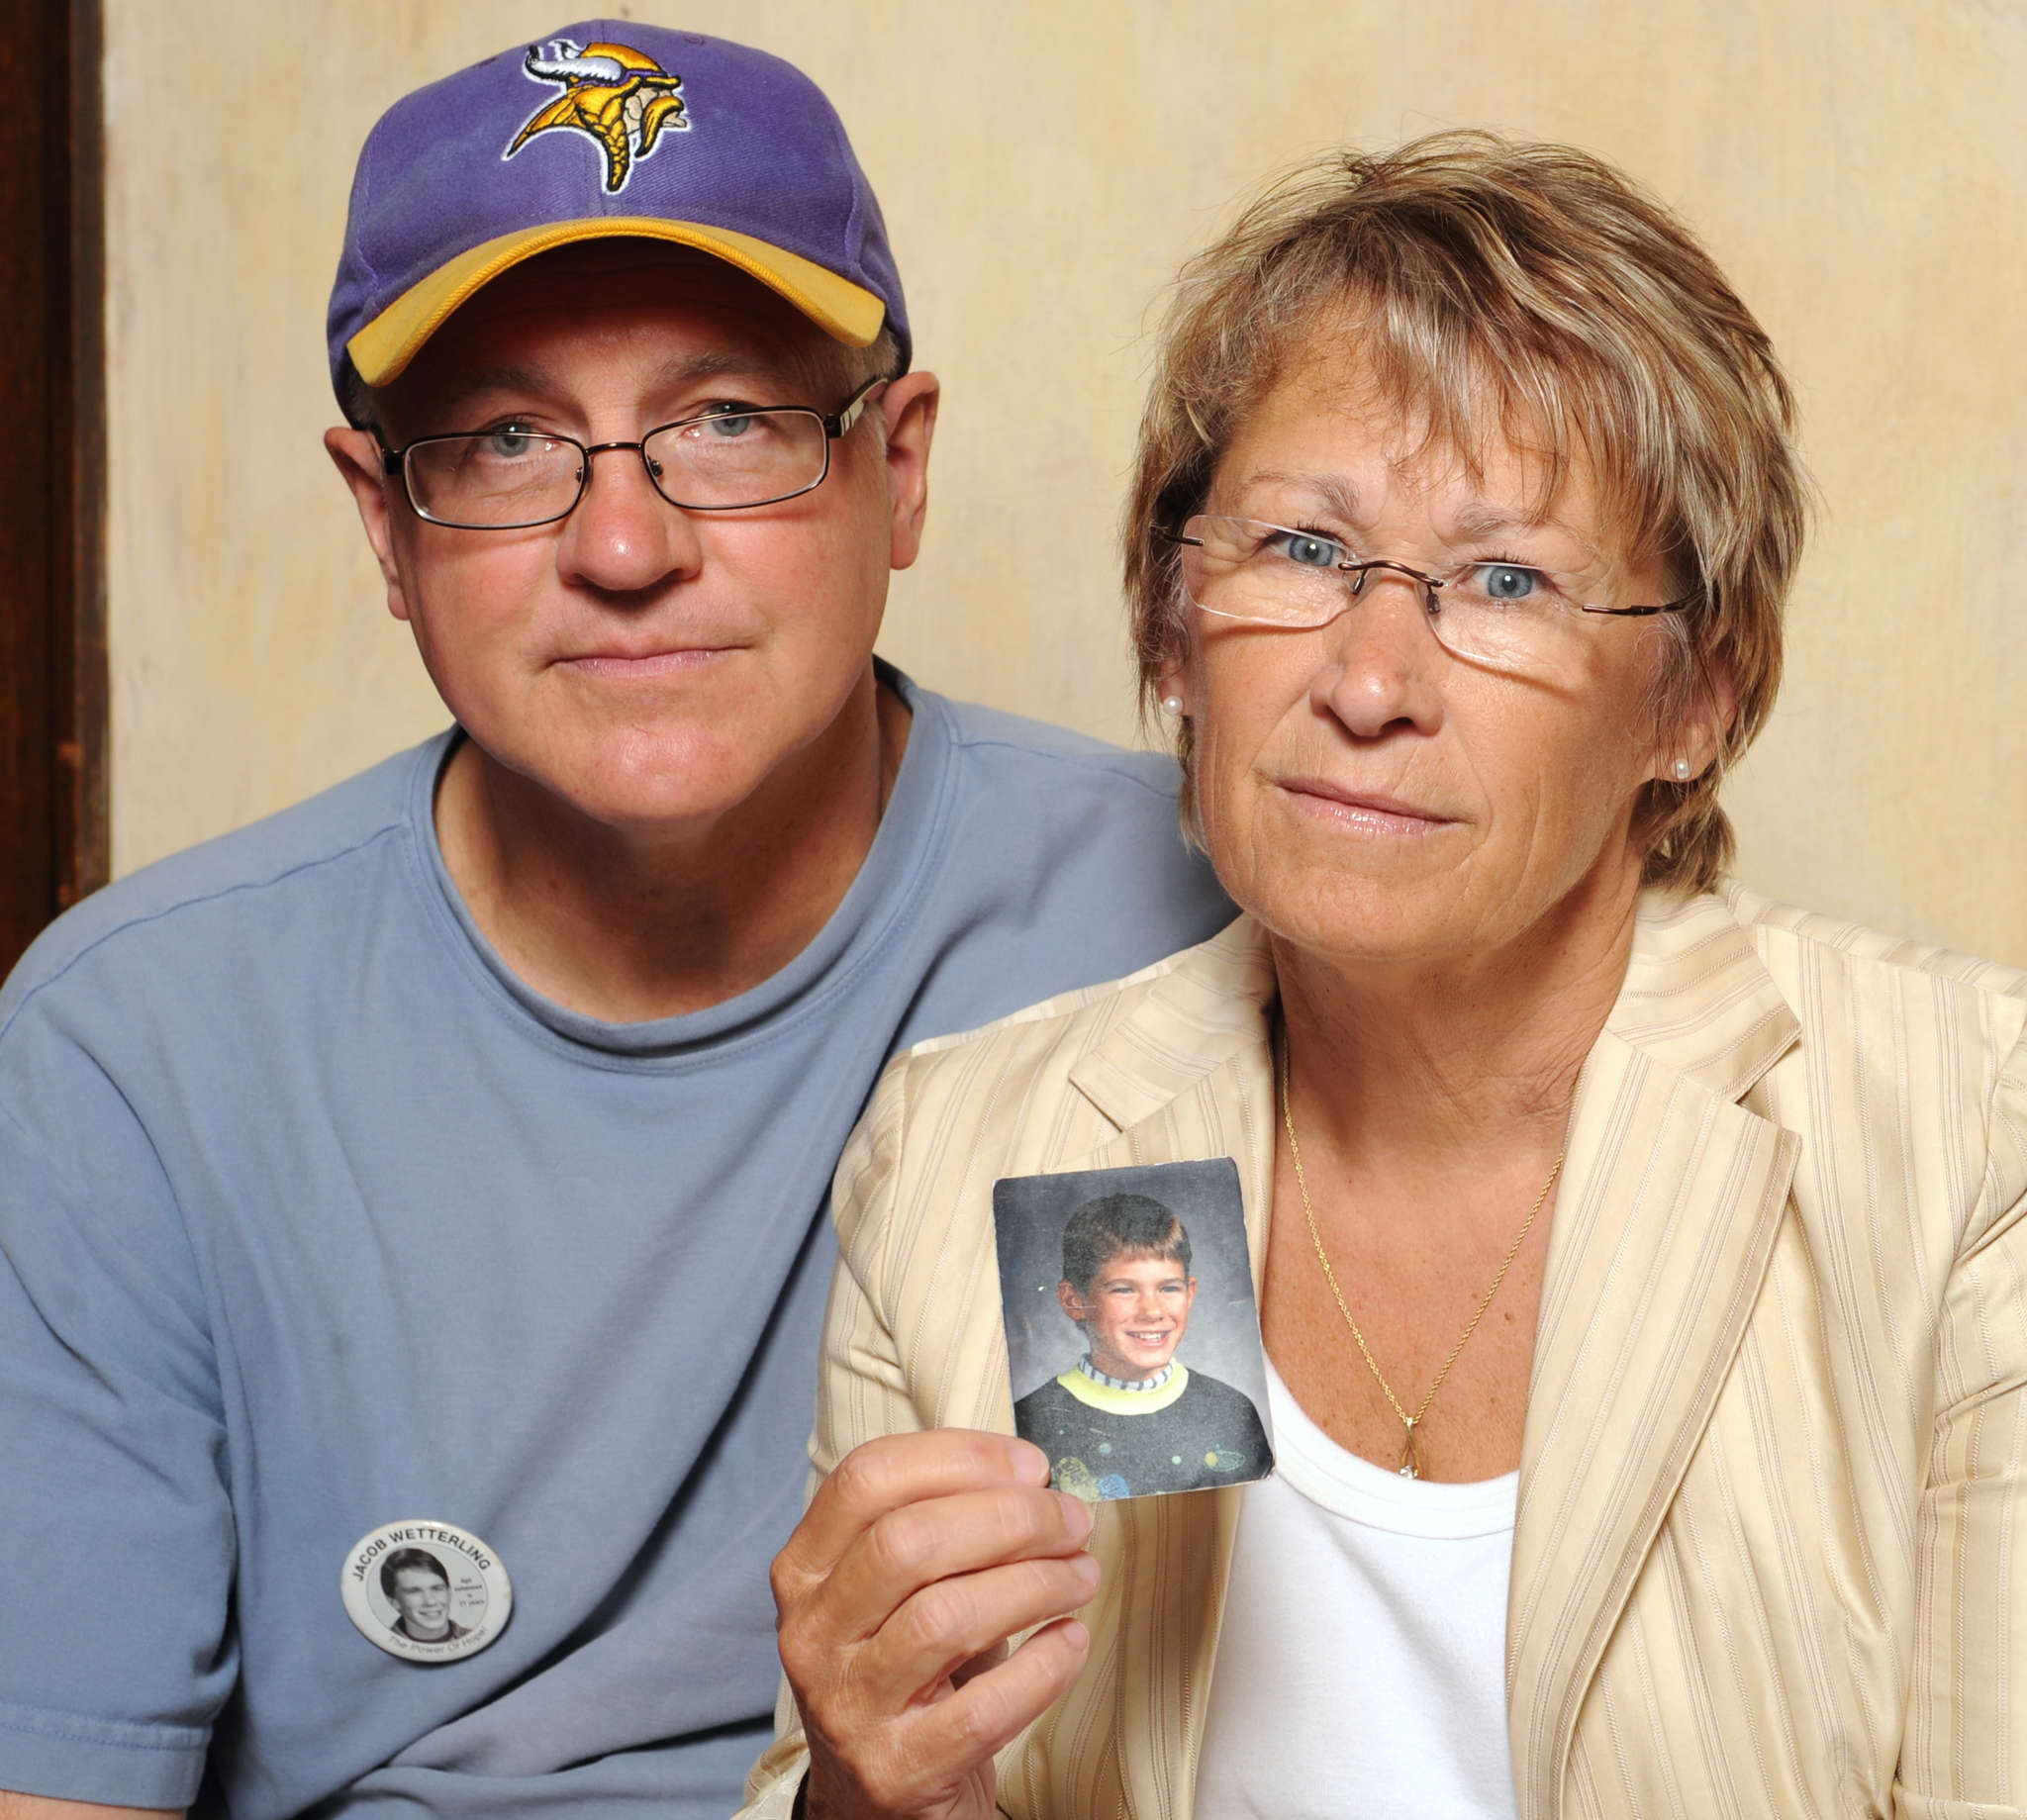 Jerry and Patty Wetterling show a photo of their son Jacob, who was abducted in 1989 in St. Joseph, Minn. His remains were found this week, and a man confessed to Jacob´s murder.